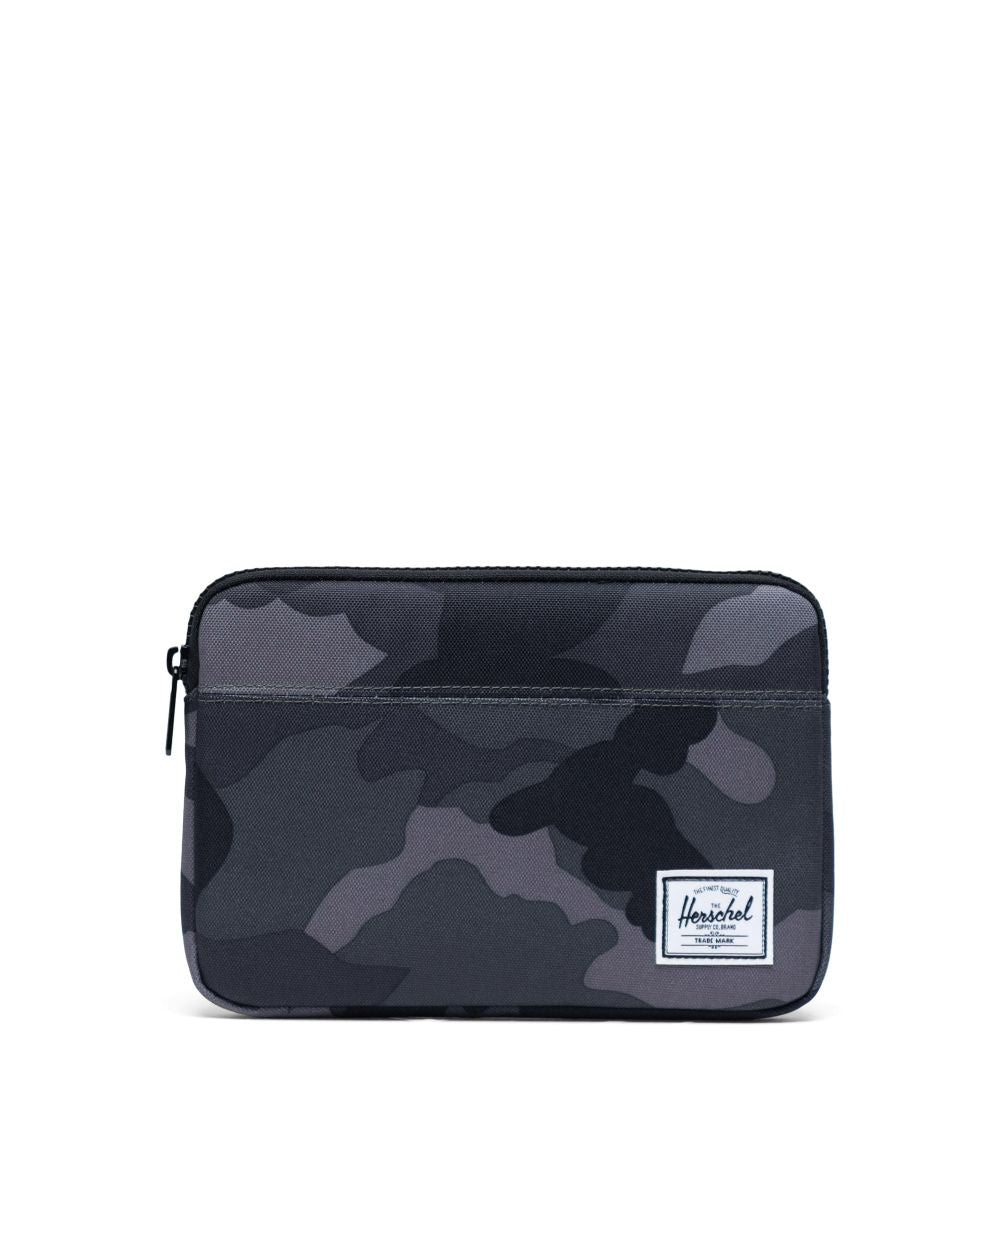 HERSCHEL - ANCHOR SLEEVE IN NIGHT CAMO